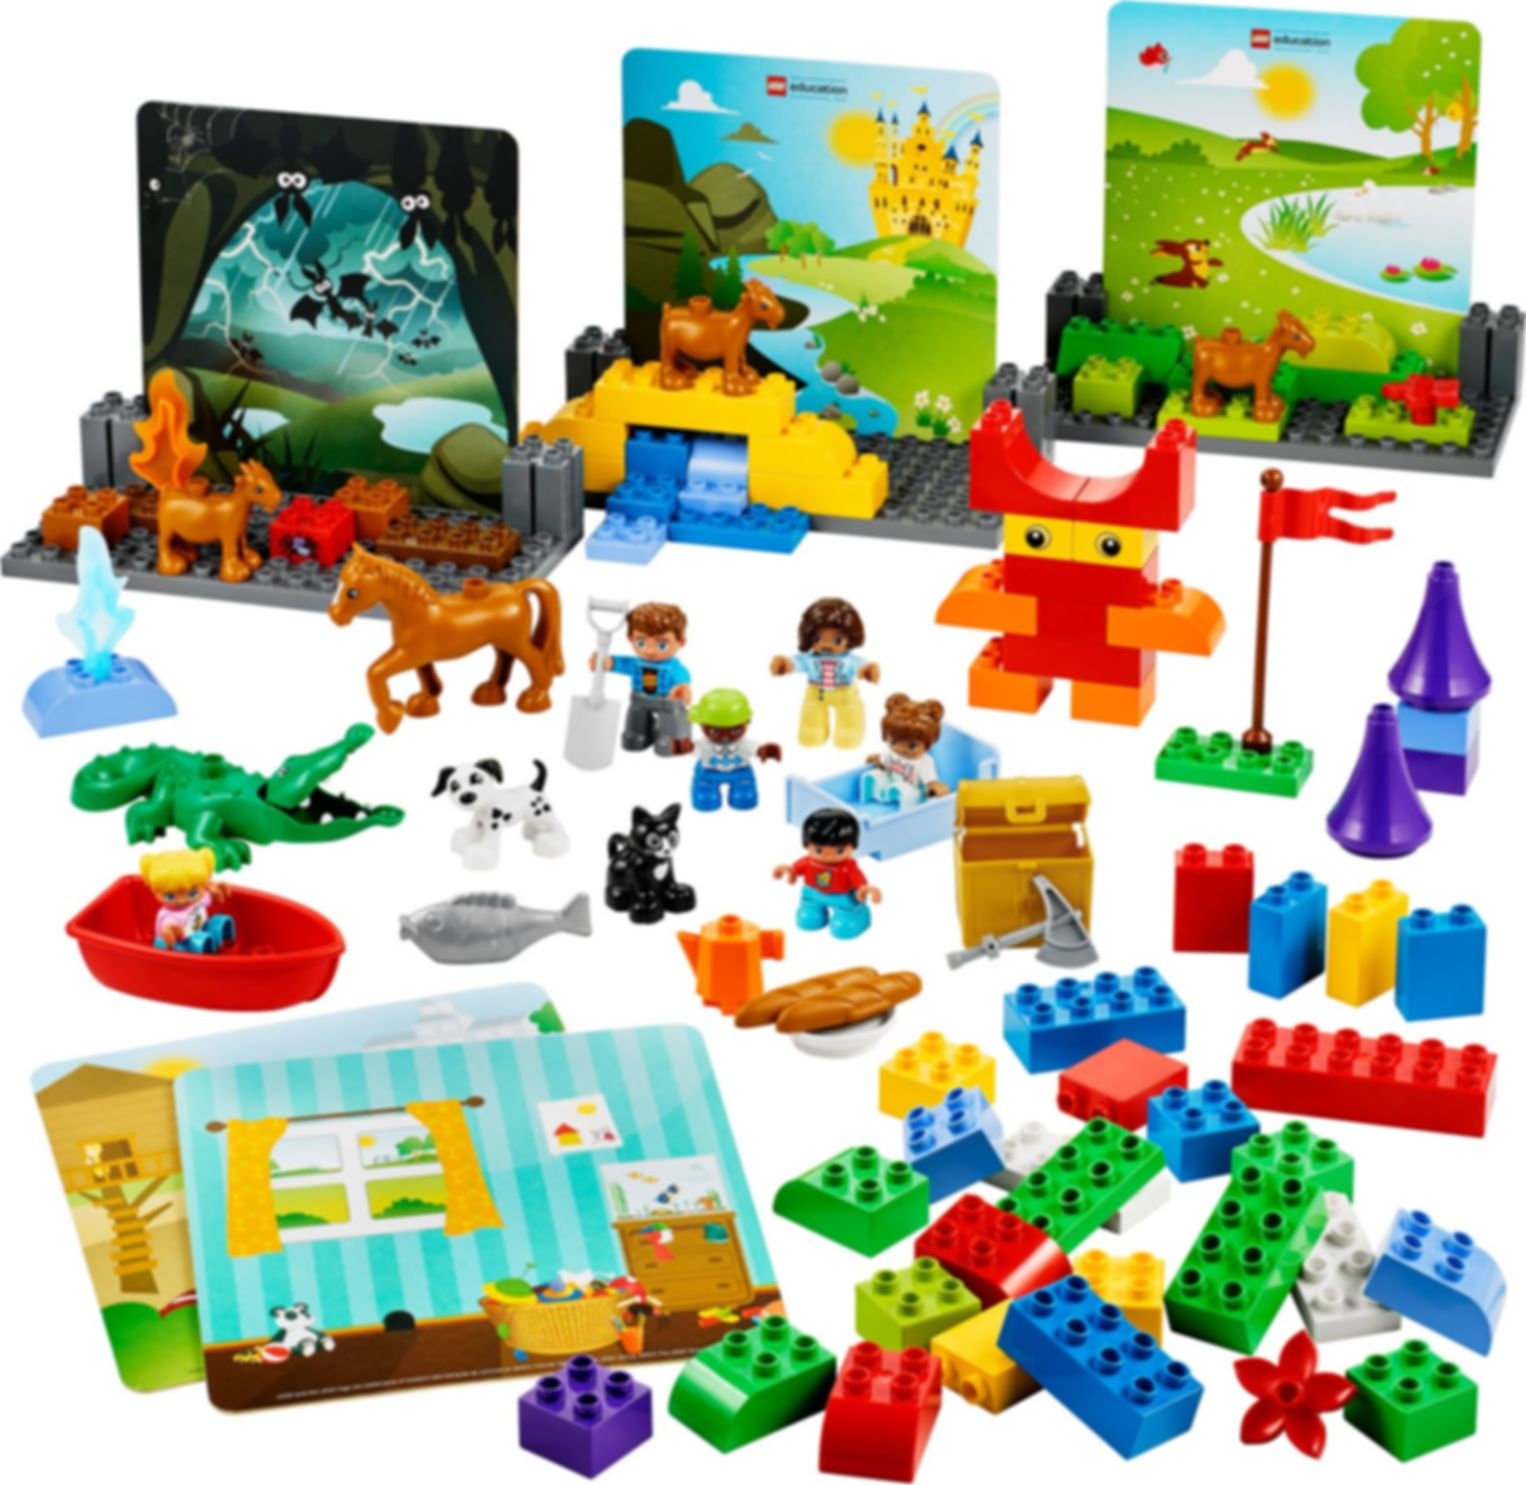 LEGO® Education StoryTales components